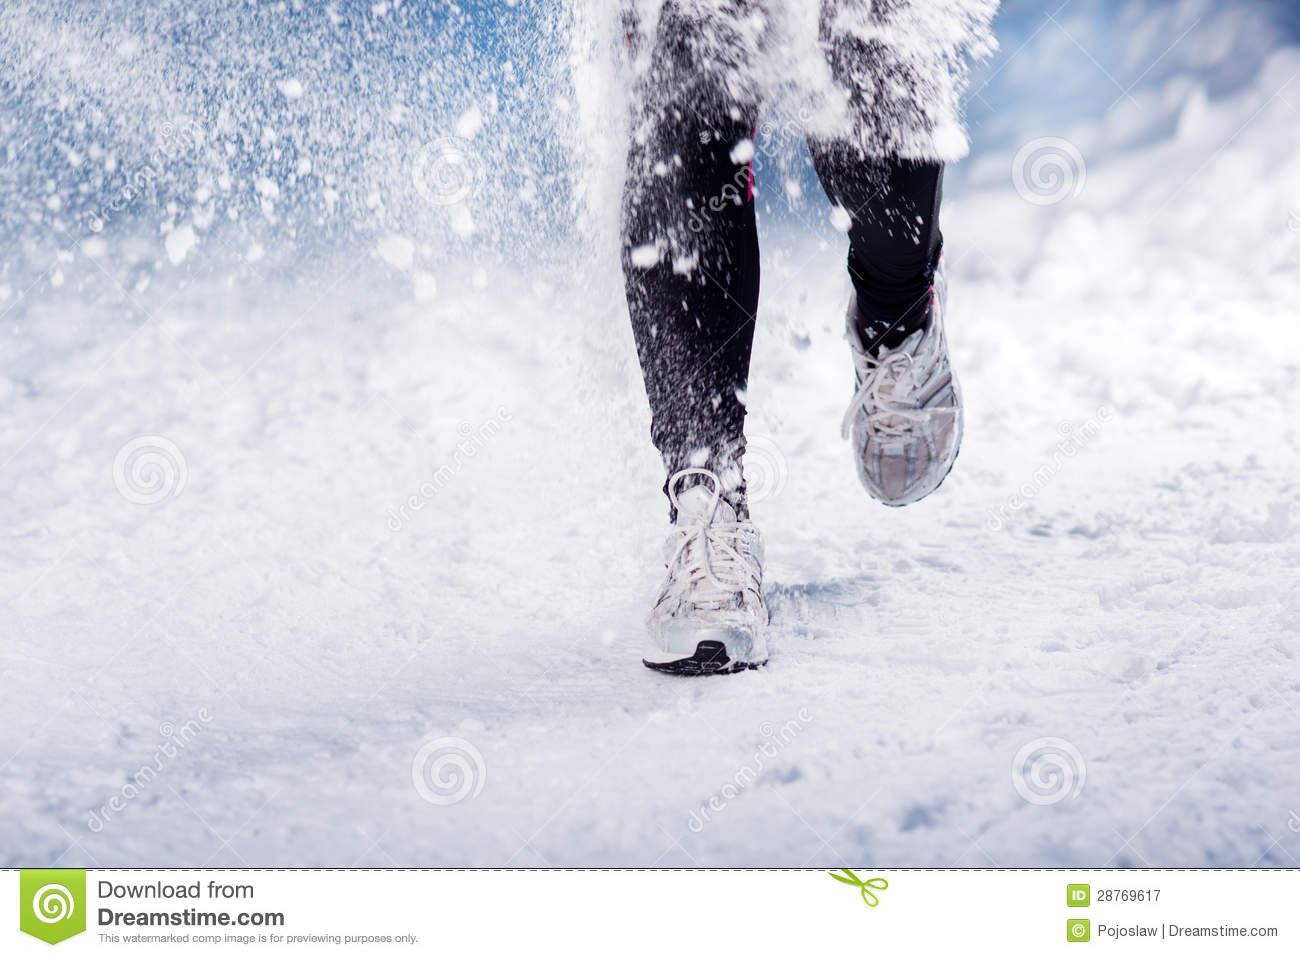 Wallpaper Falling Snow Winter Running Woman Royalty Free Stock Photography